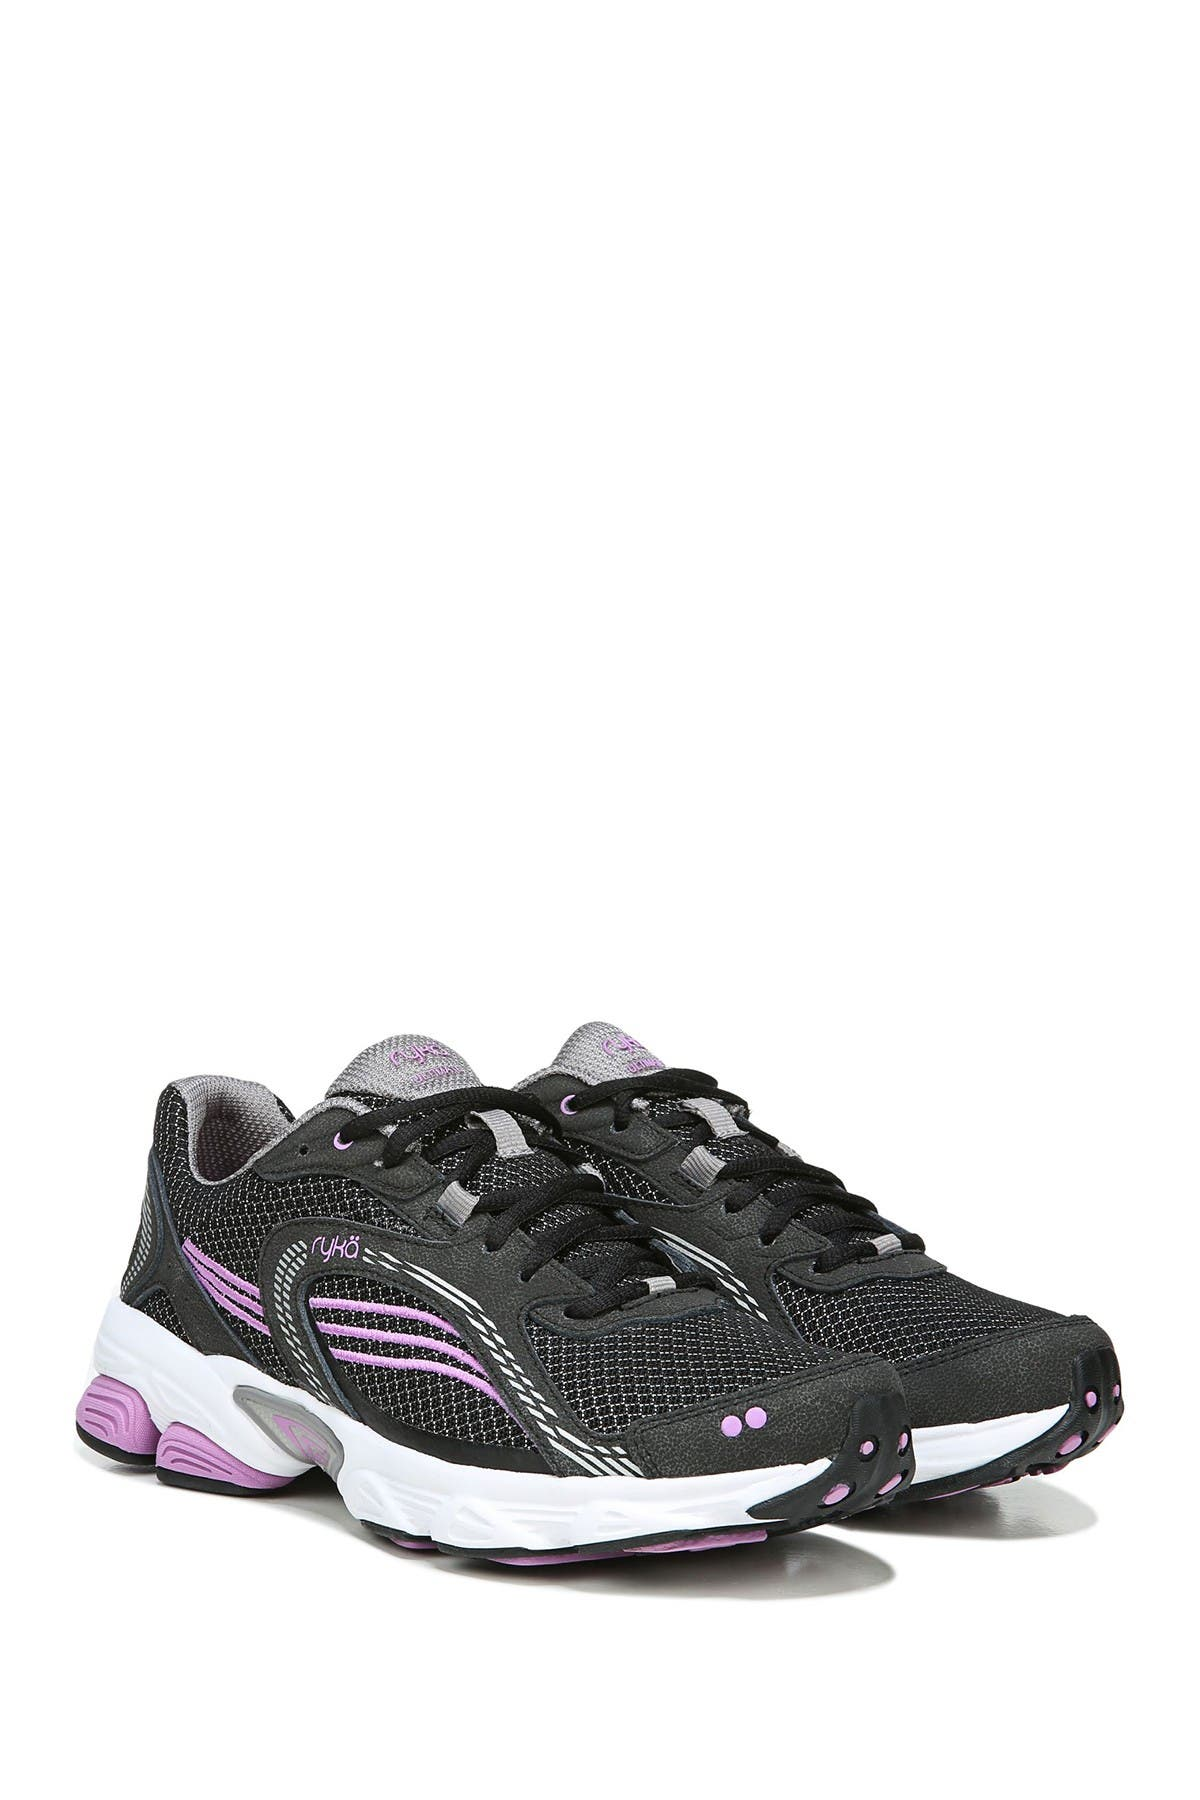 Image of Ryka Ultimate Running Shoe - Wide Width Available